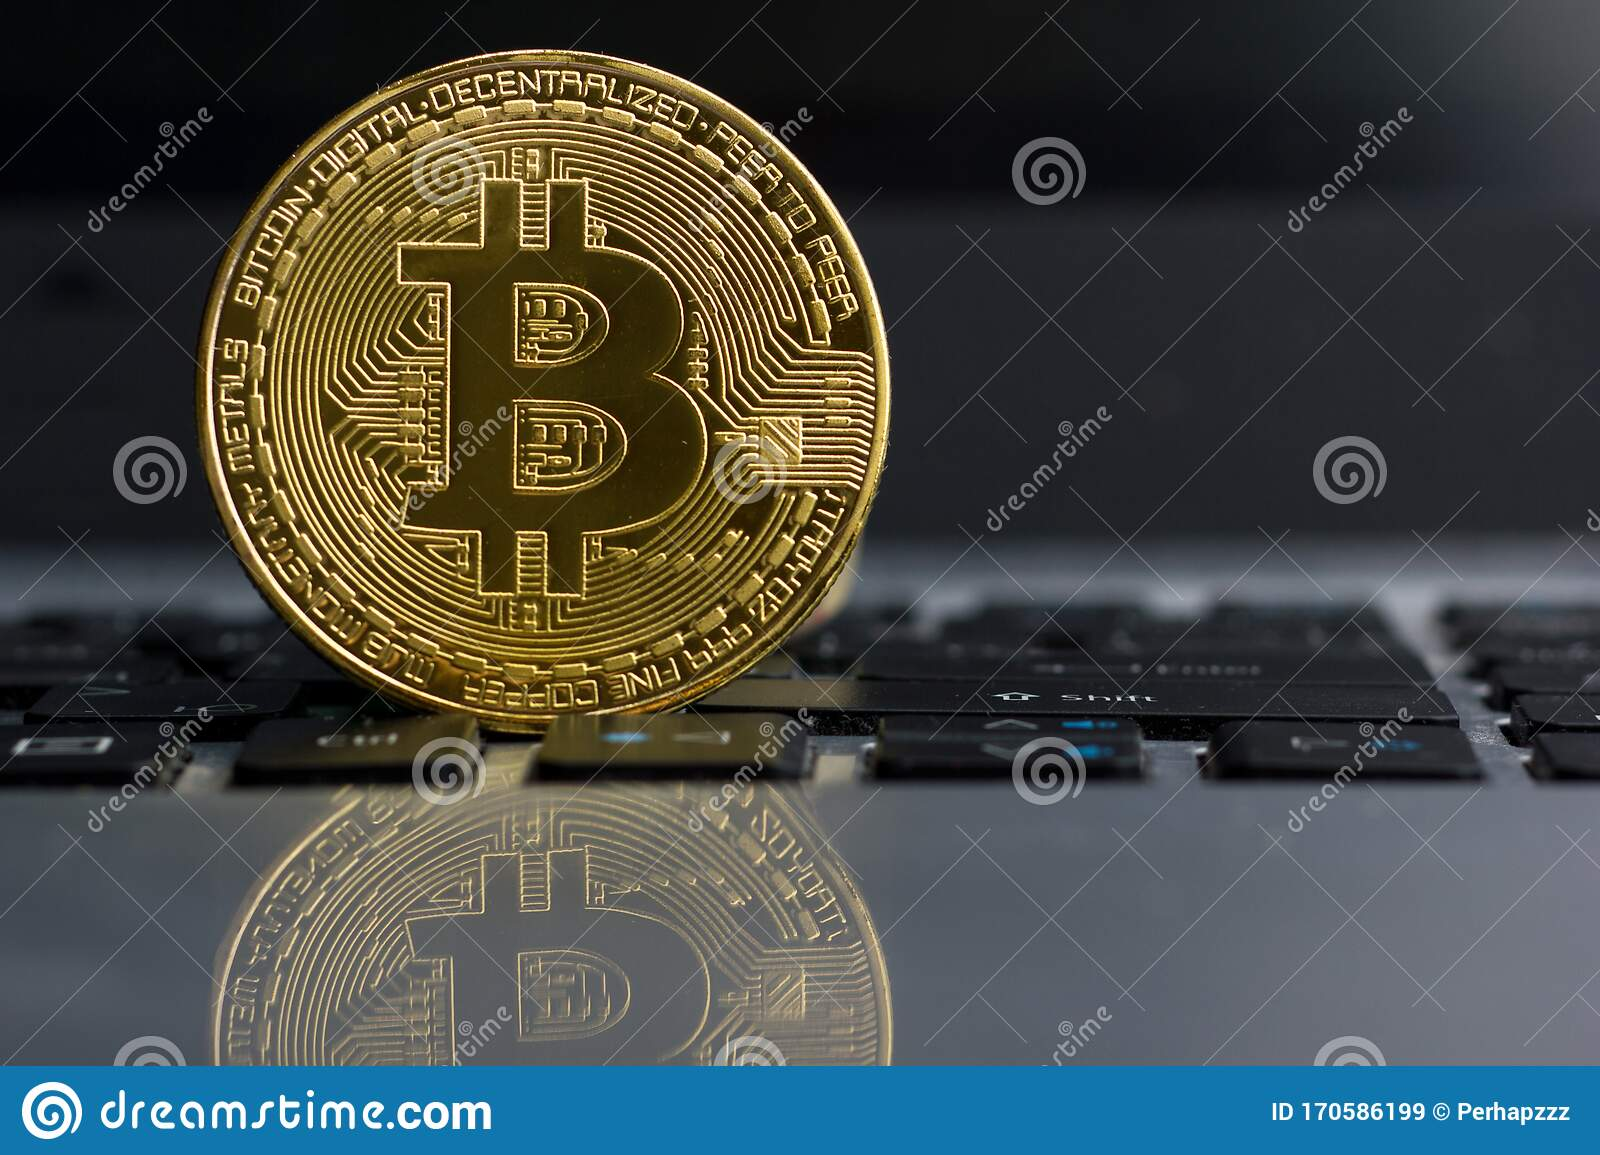 virtual money cryptocurrency